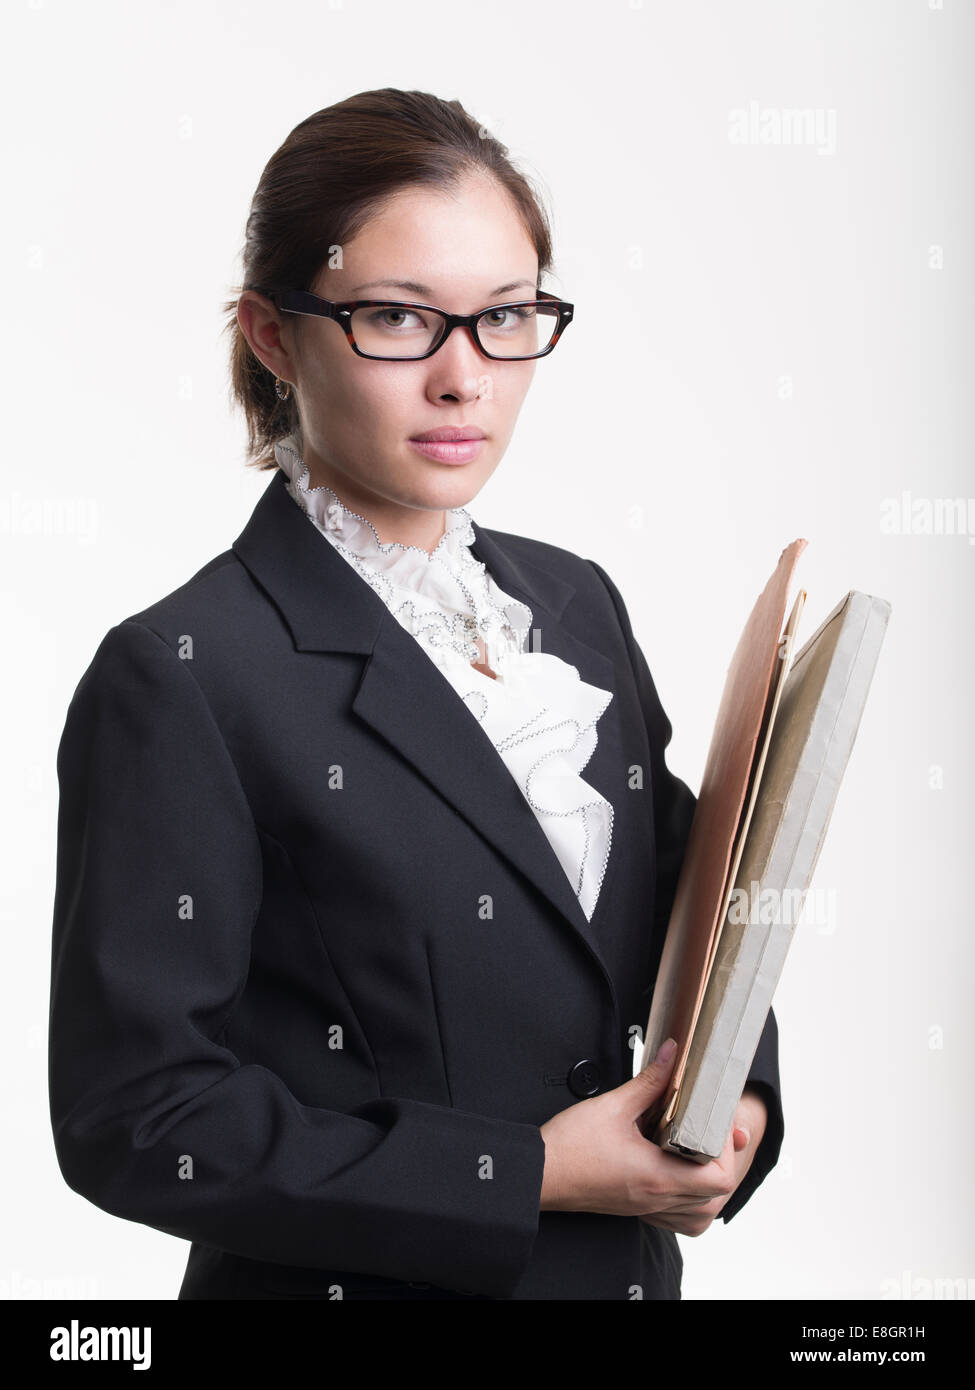 Young female lawyer / law student - Stock Image